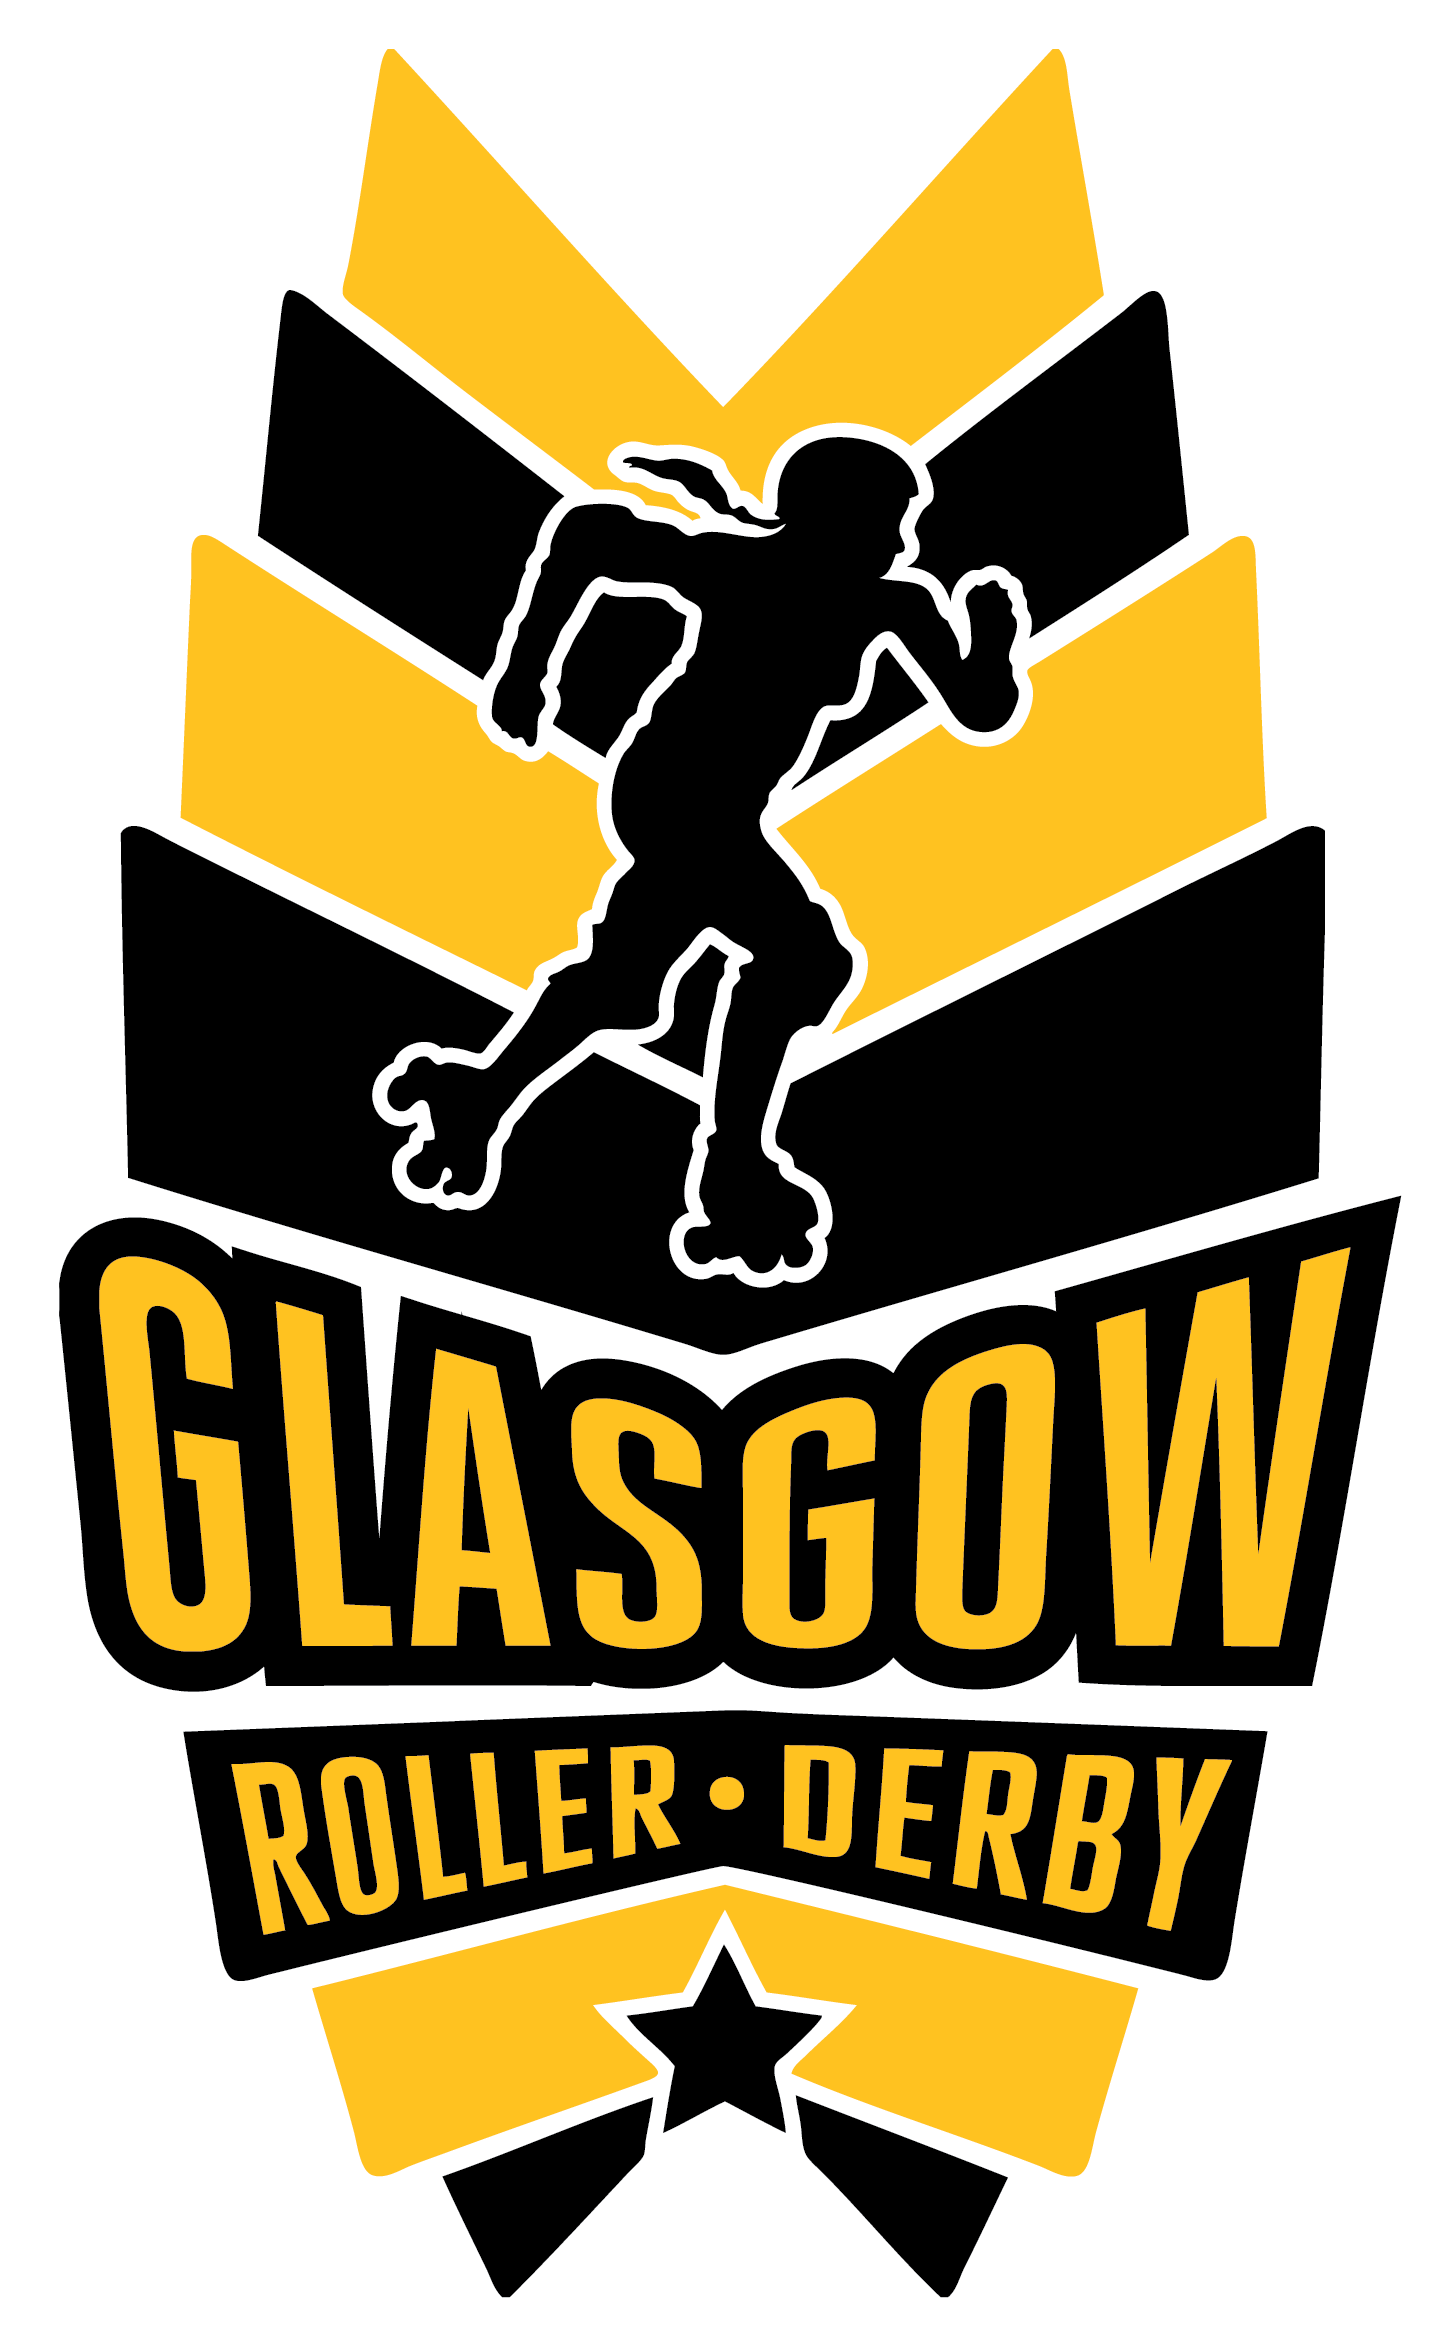 Glasgow_Roller_Derby_3_Color_Logo